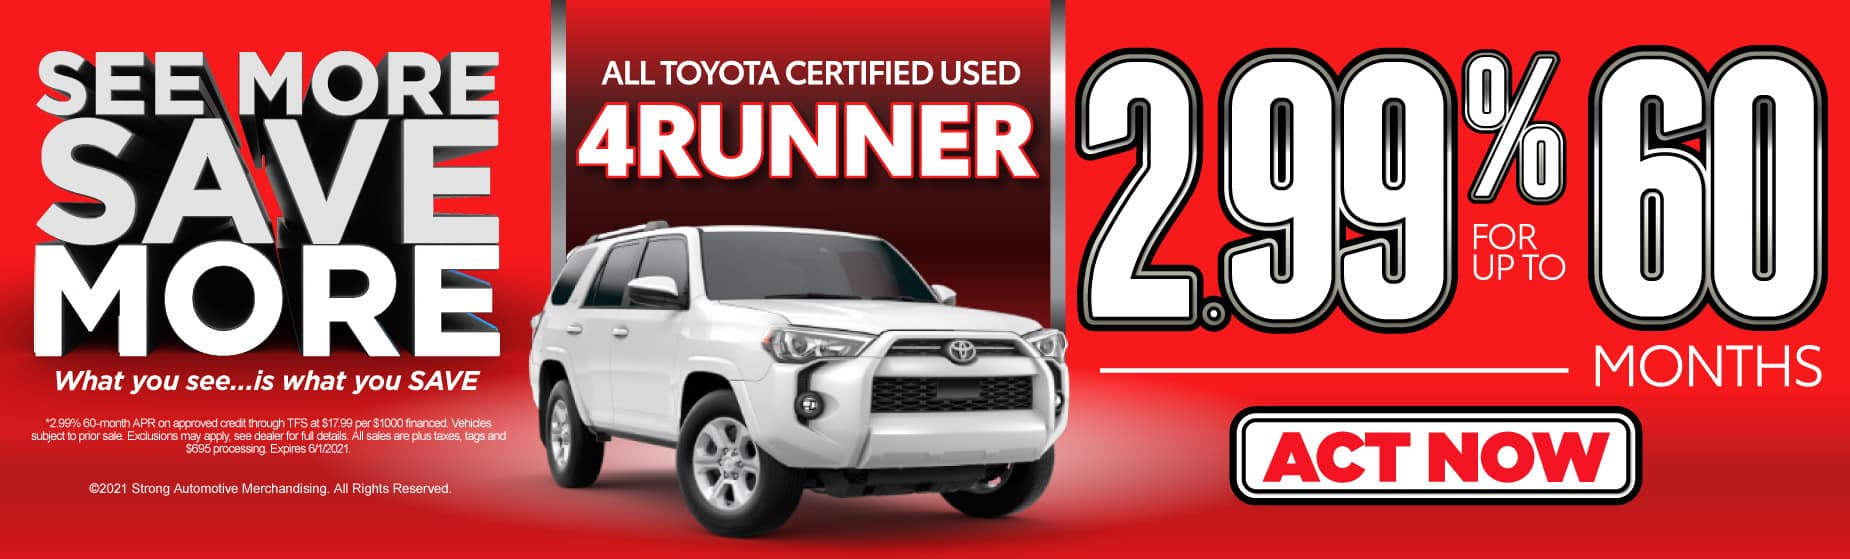 Used 4Runner | 2.99% for up to 60 months | Act Now